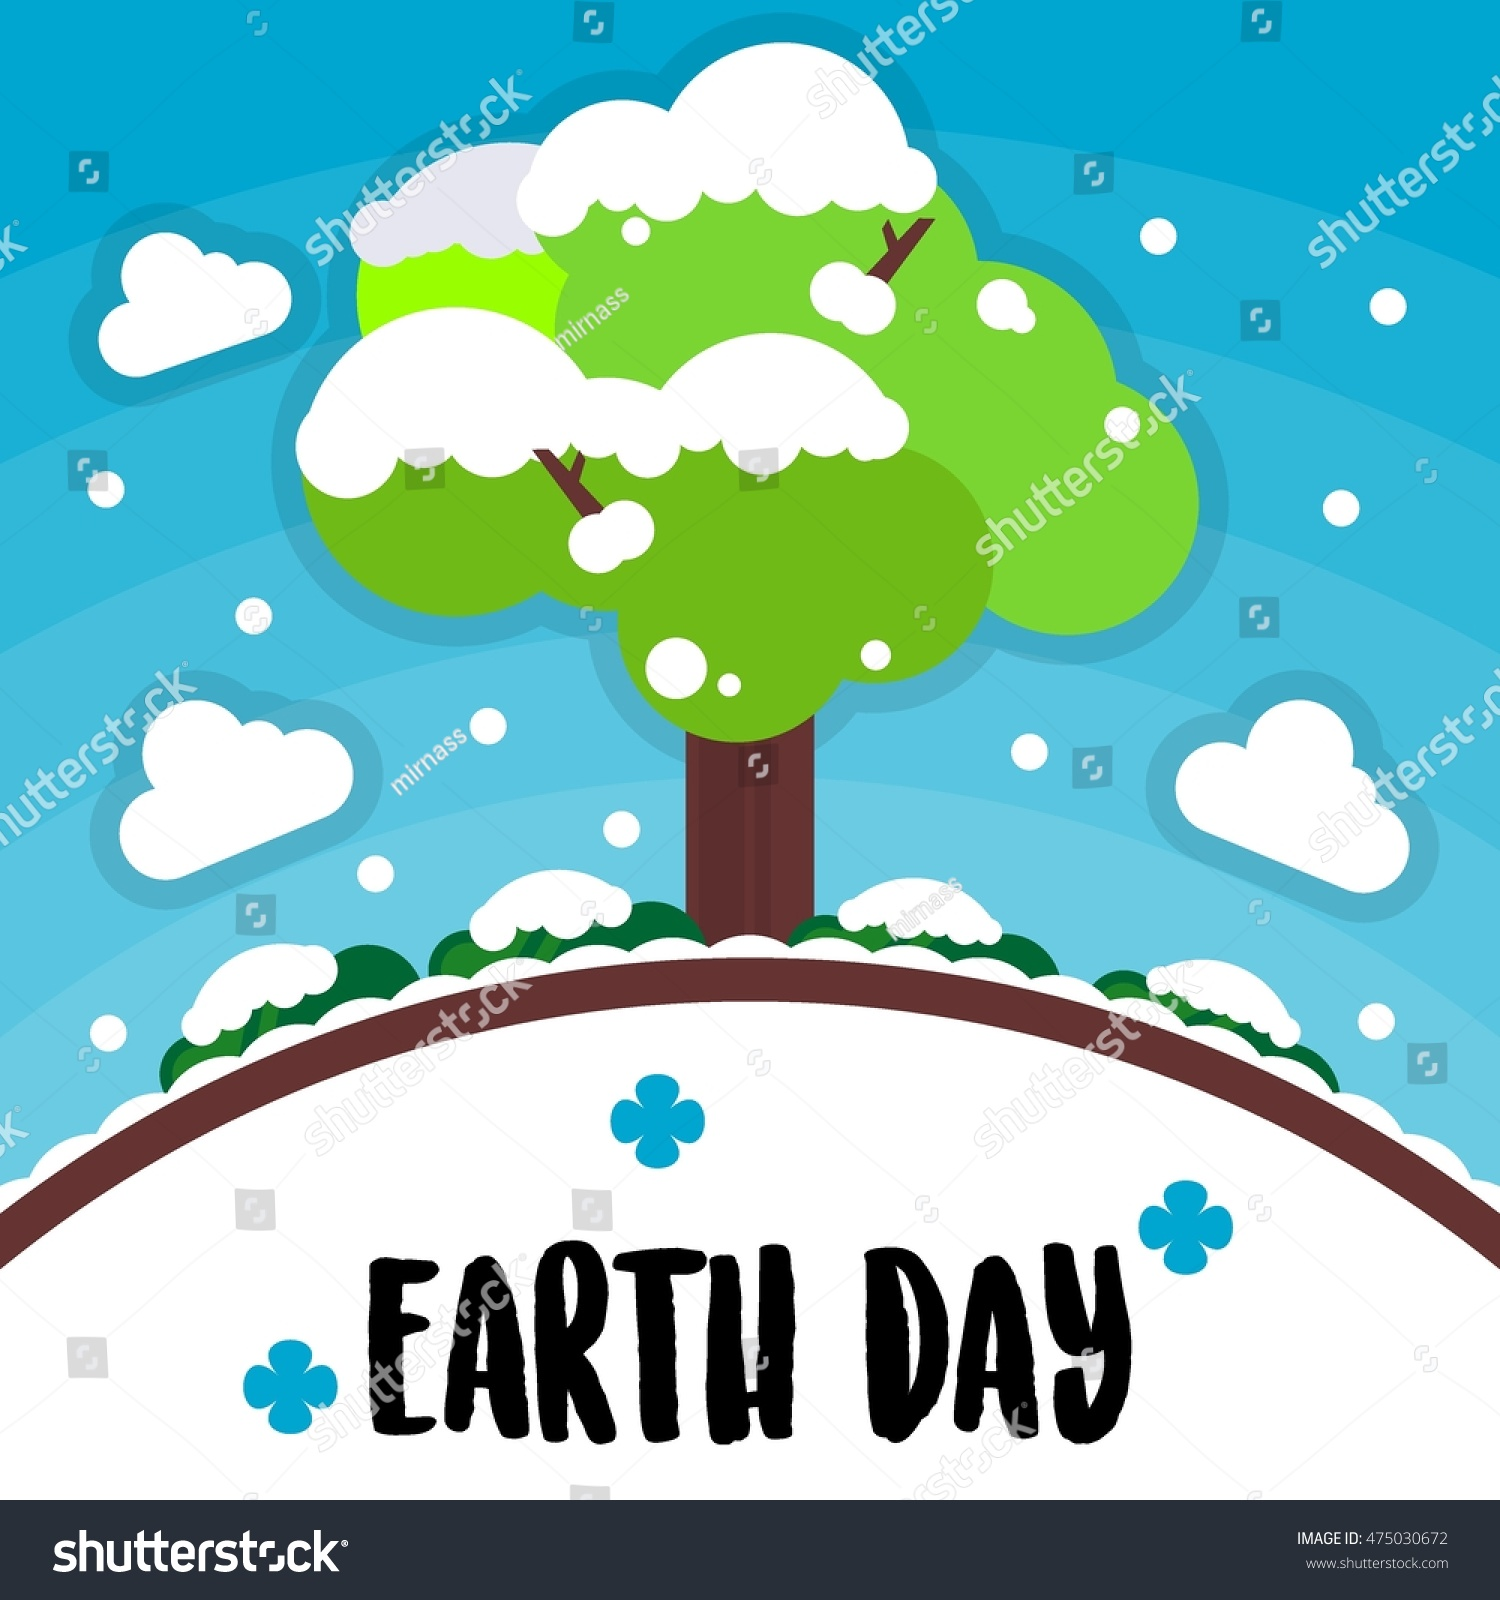 Poster design on environment - Poster Design Environment Earth Day Poster Design Template World Environment Day